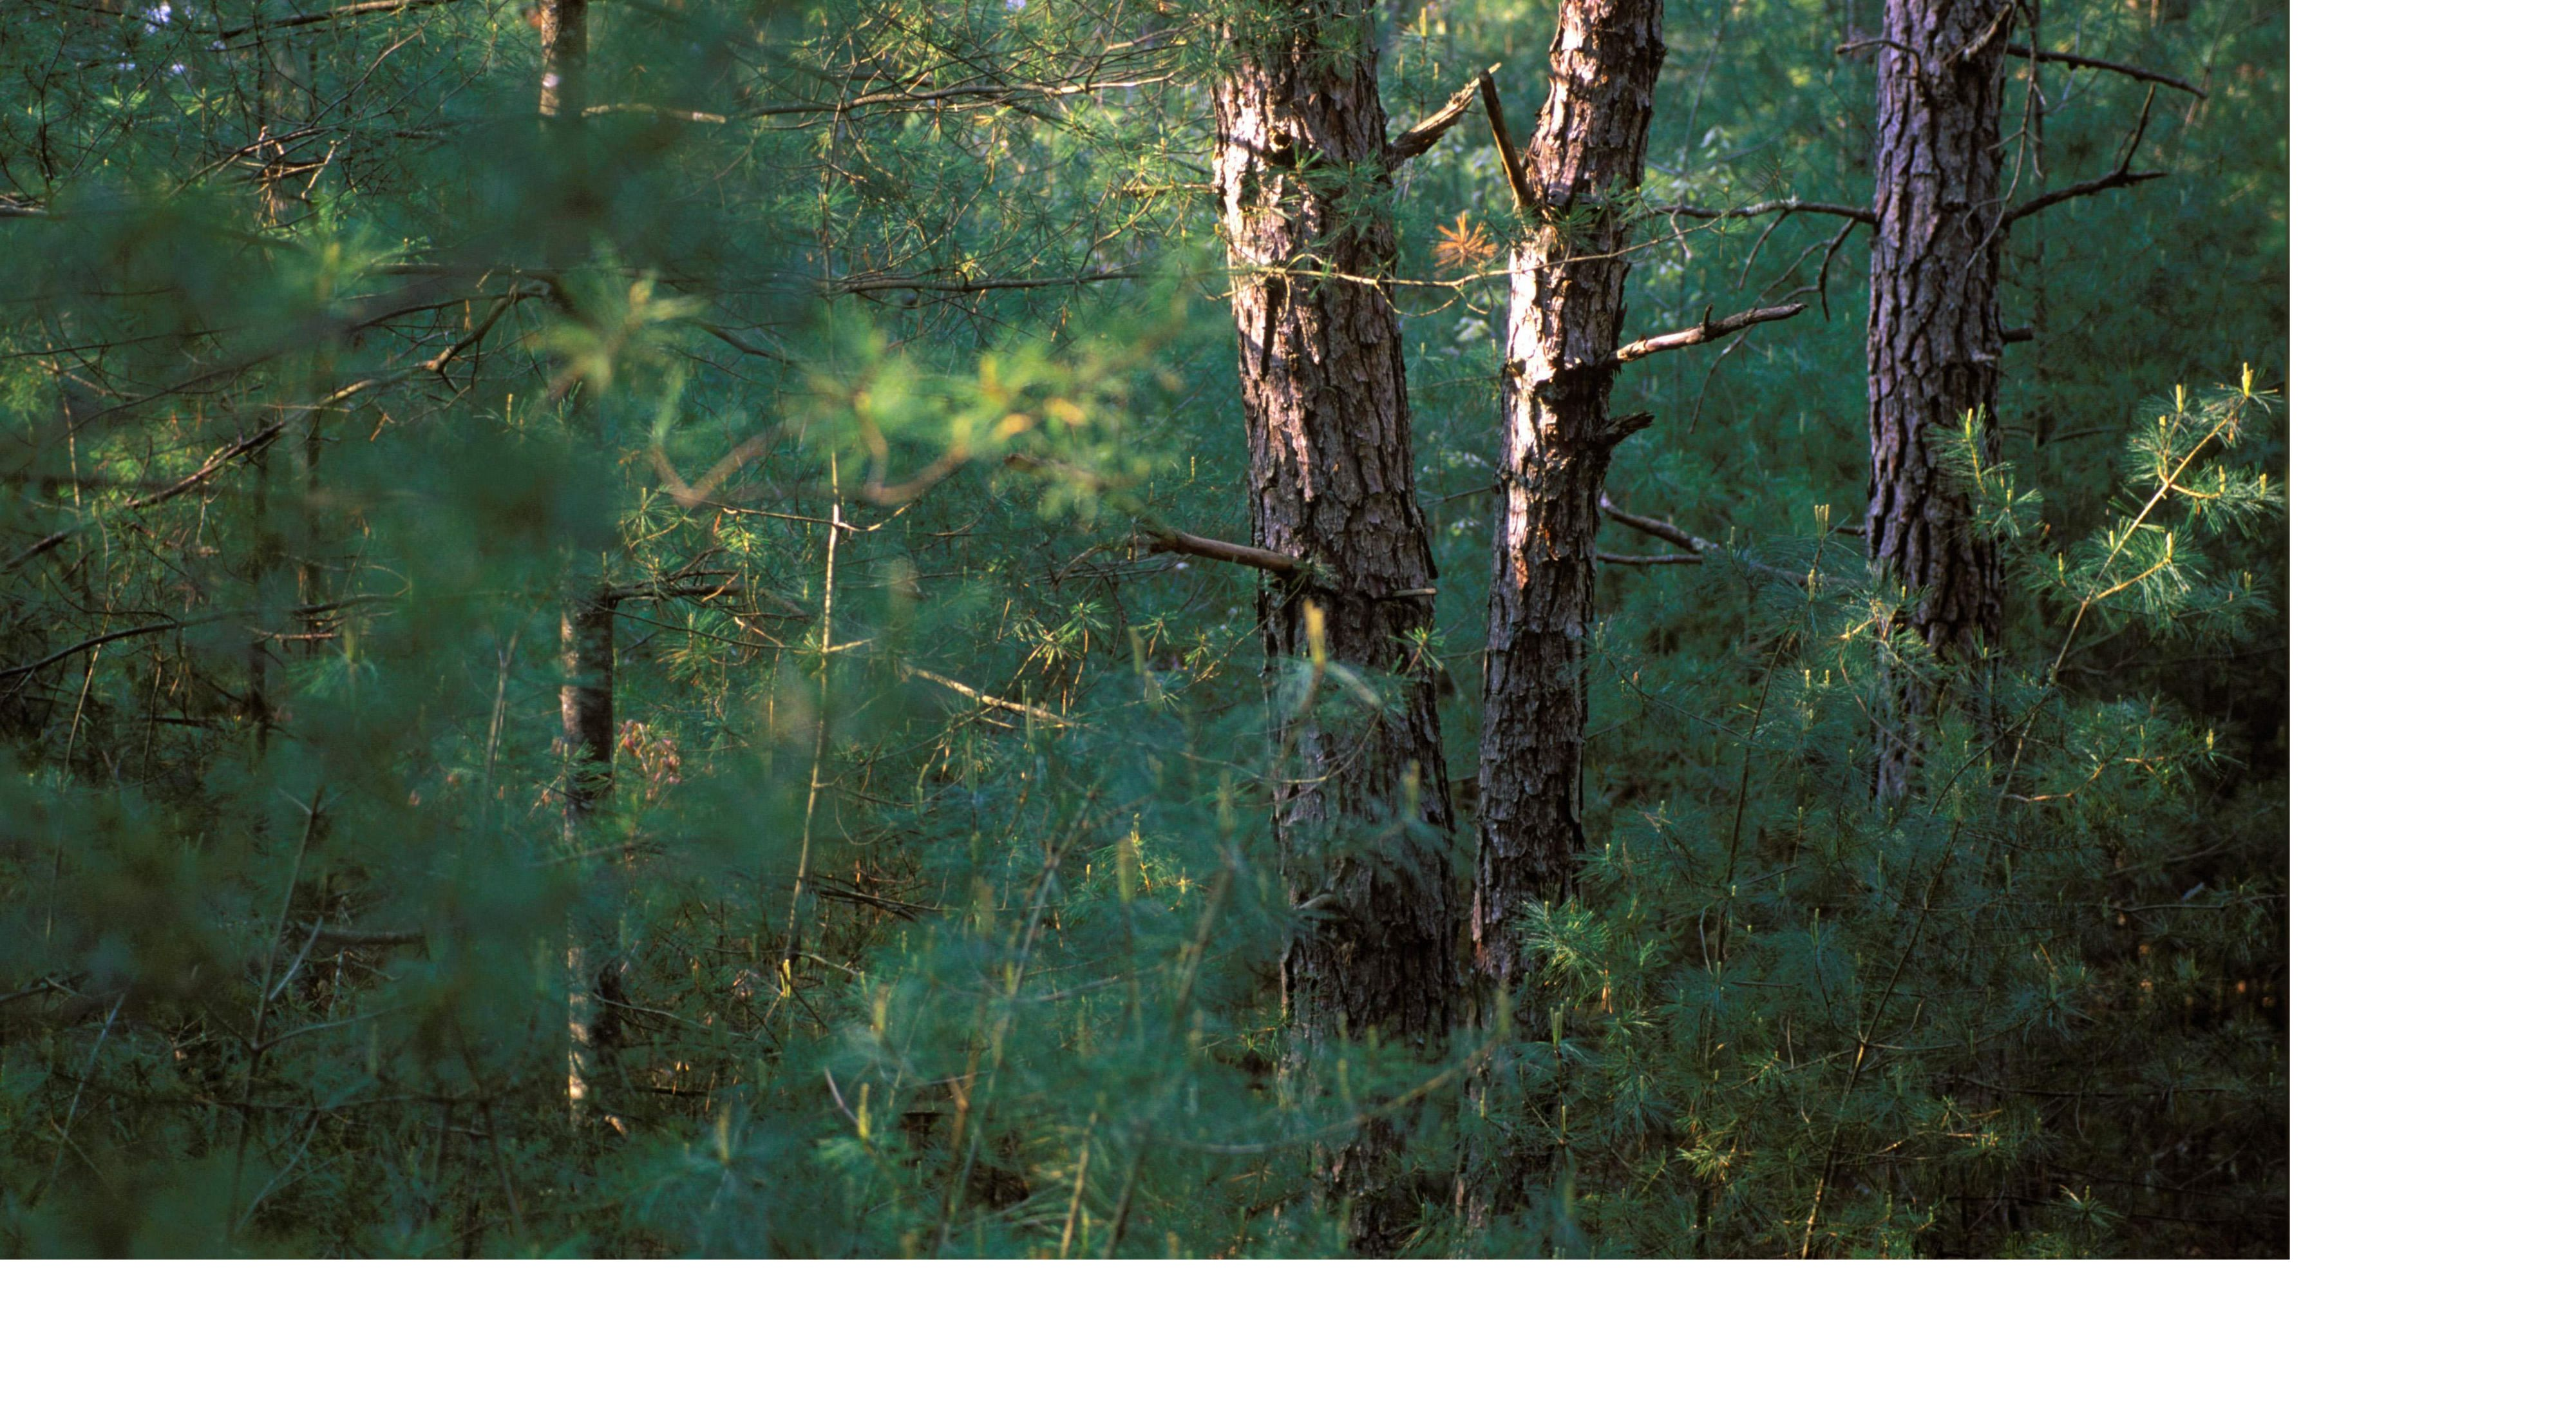 Pitch Pine Forest